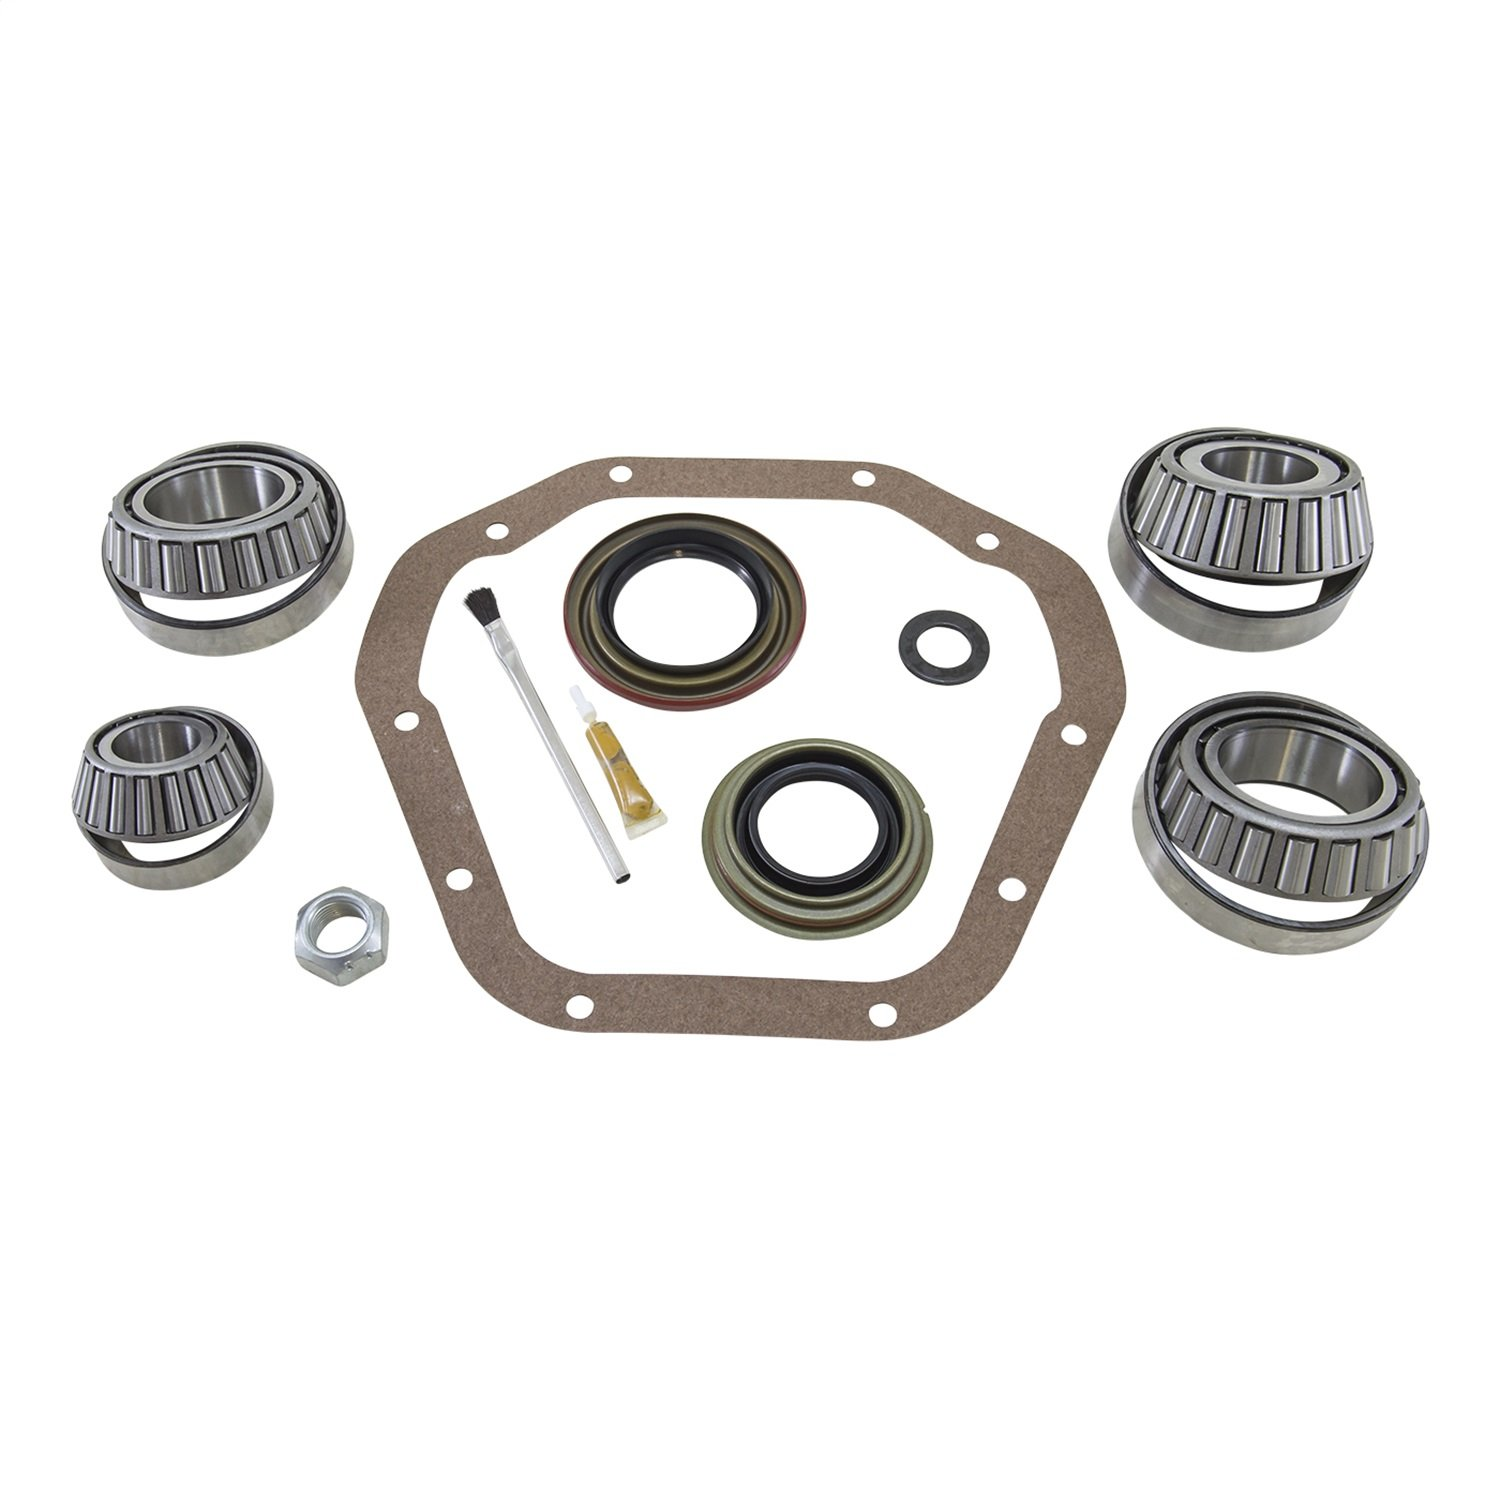 Yukon Gear & Axle (BK F10.5-C) Bearing Installation Kit for Ford 10.5 Differential by Yukon Gear (Image #2)